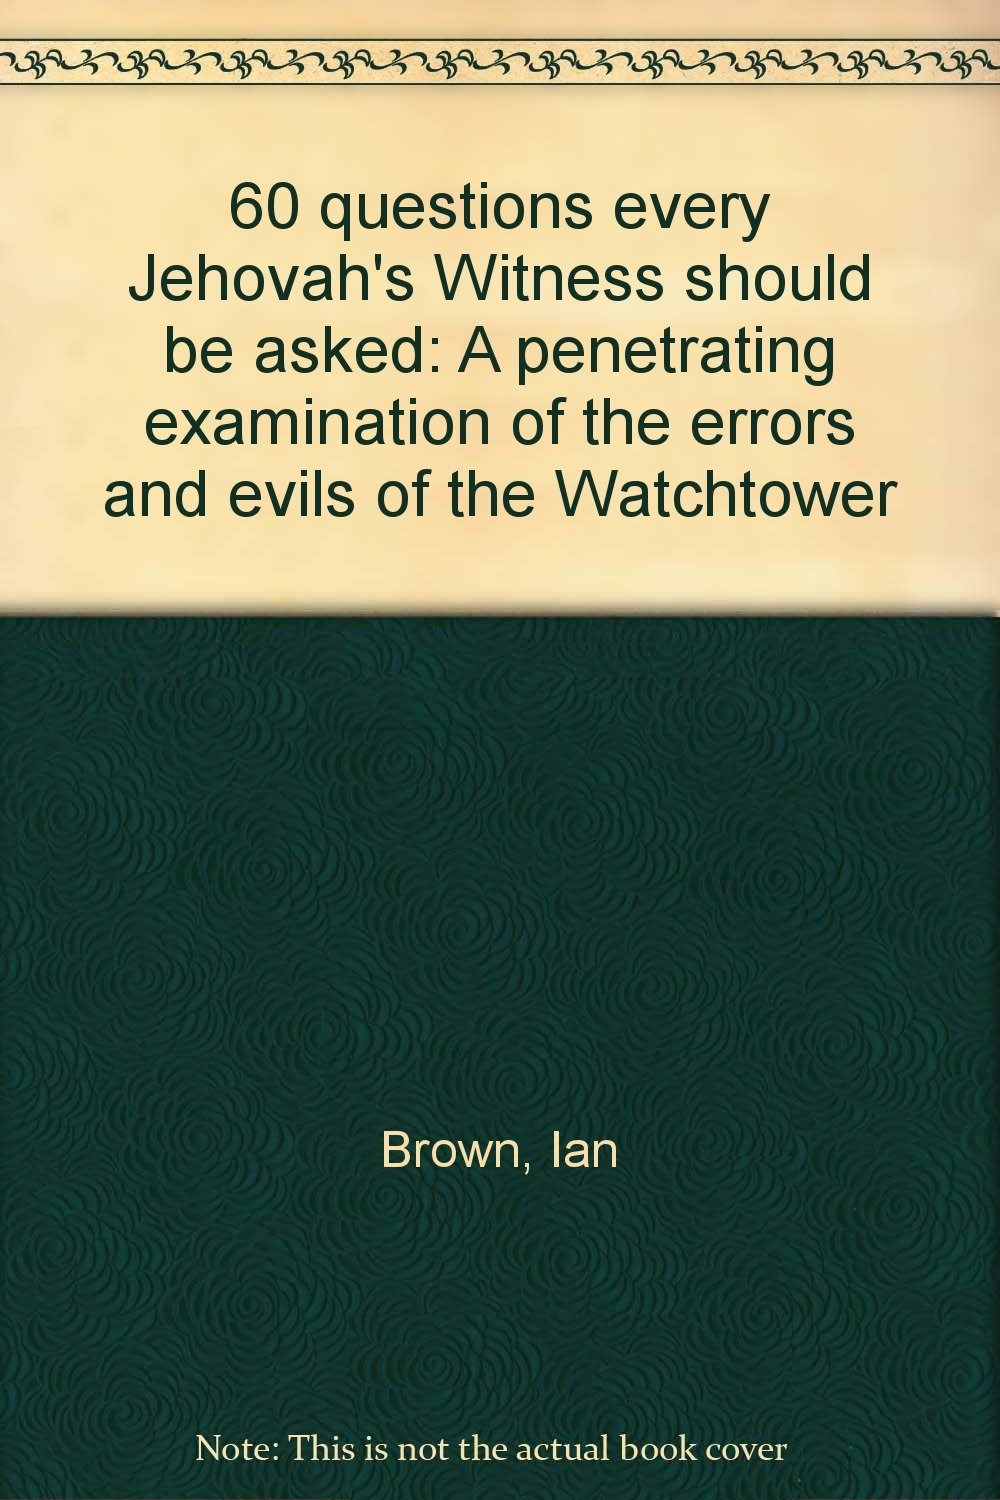 60 questions every Jehovah's Witness should be asked: A penetrating  examination of the errors and evils of the Watchtower: Ian Brown:  Amazon.com: Books